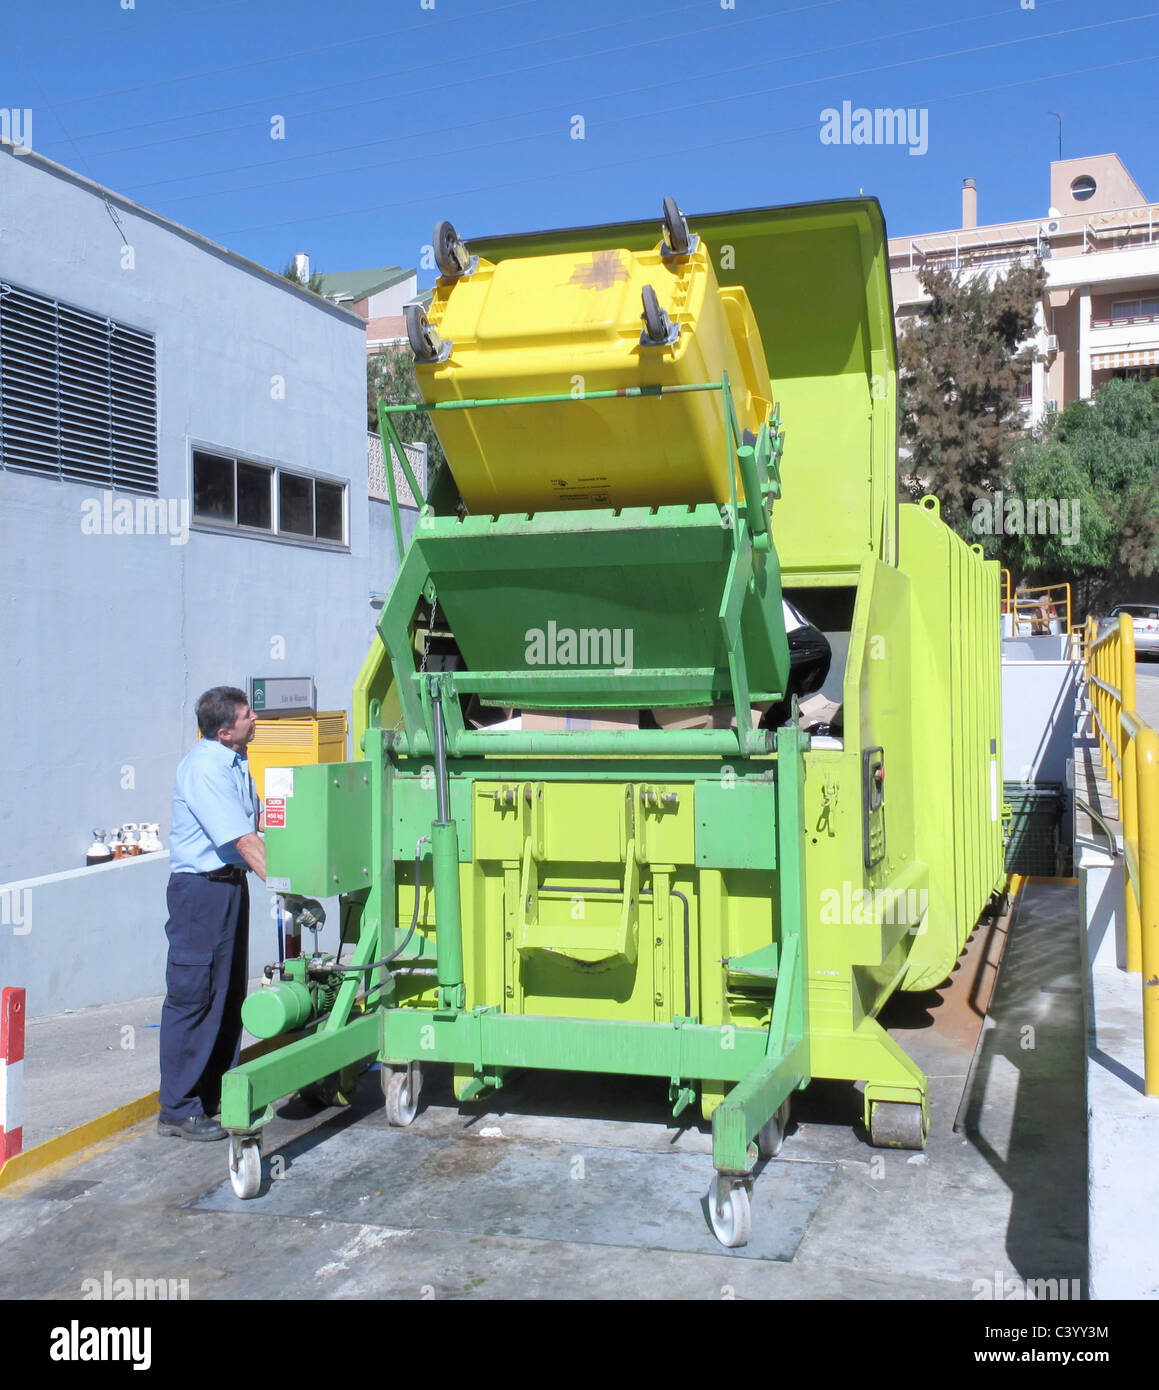 Operator tipping waste from trash bin into rubbish compactor at Clinica Hospital, Malaga, Malaga Province, Spain. - Stock Image